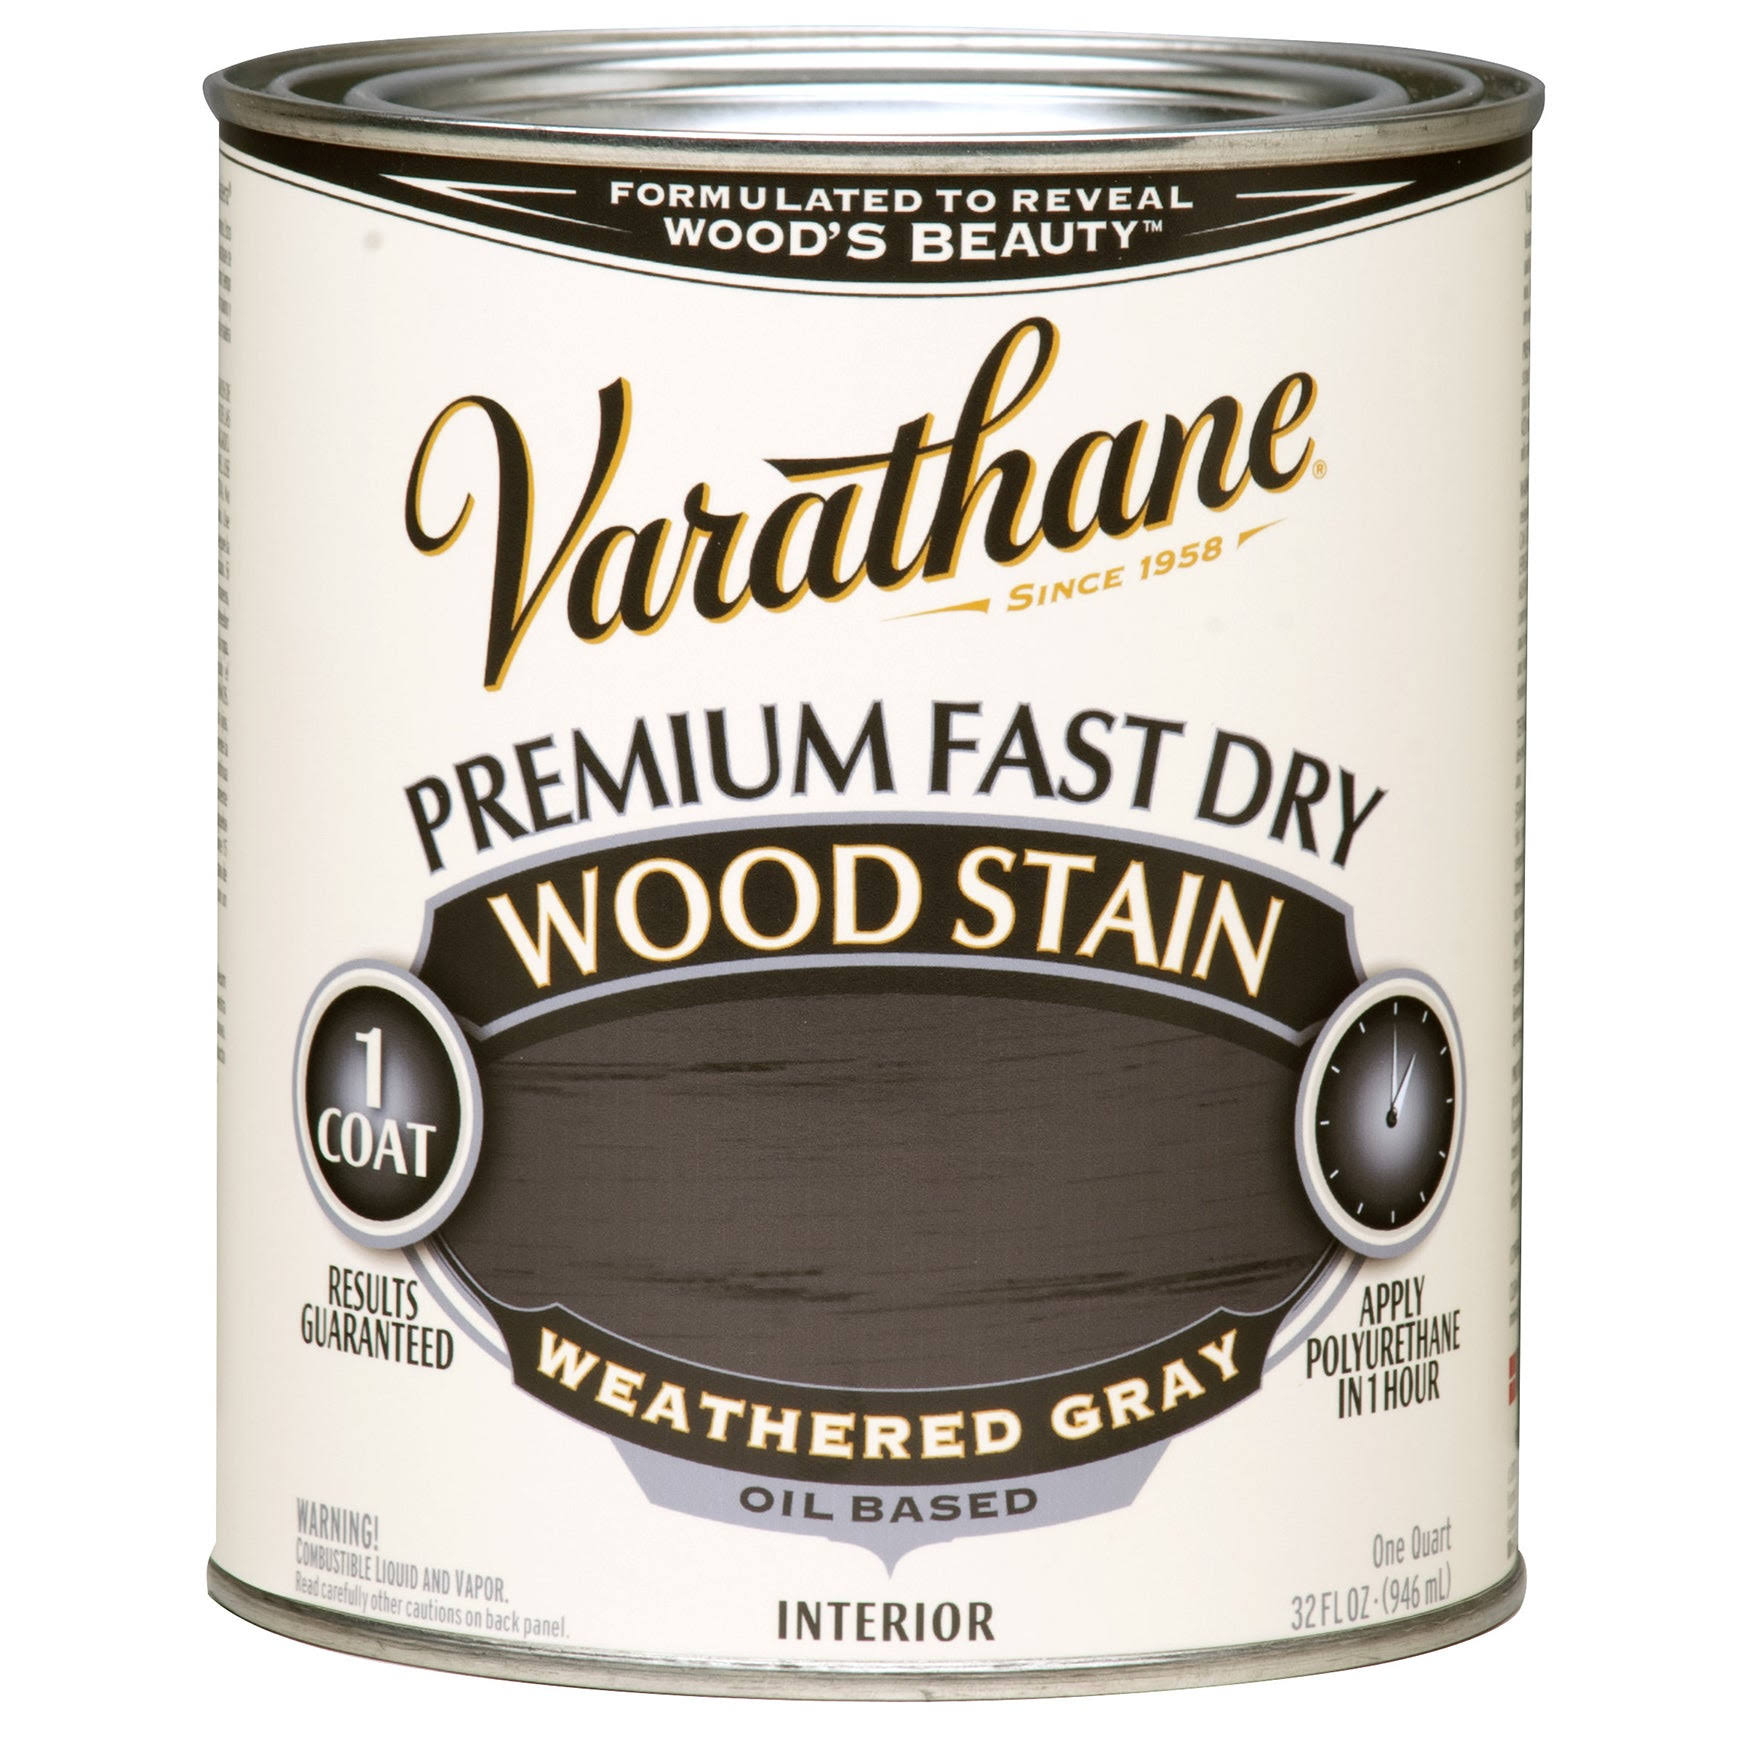 Rust-Oleum 269394 Varathane Premium Fast Dry Wood Stain - 32oz, Weathered Gray